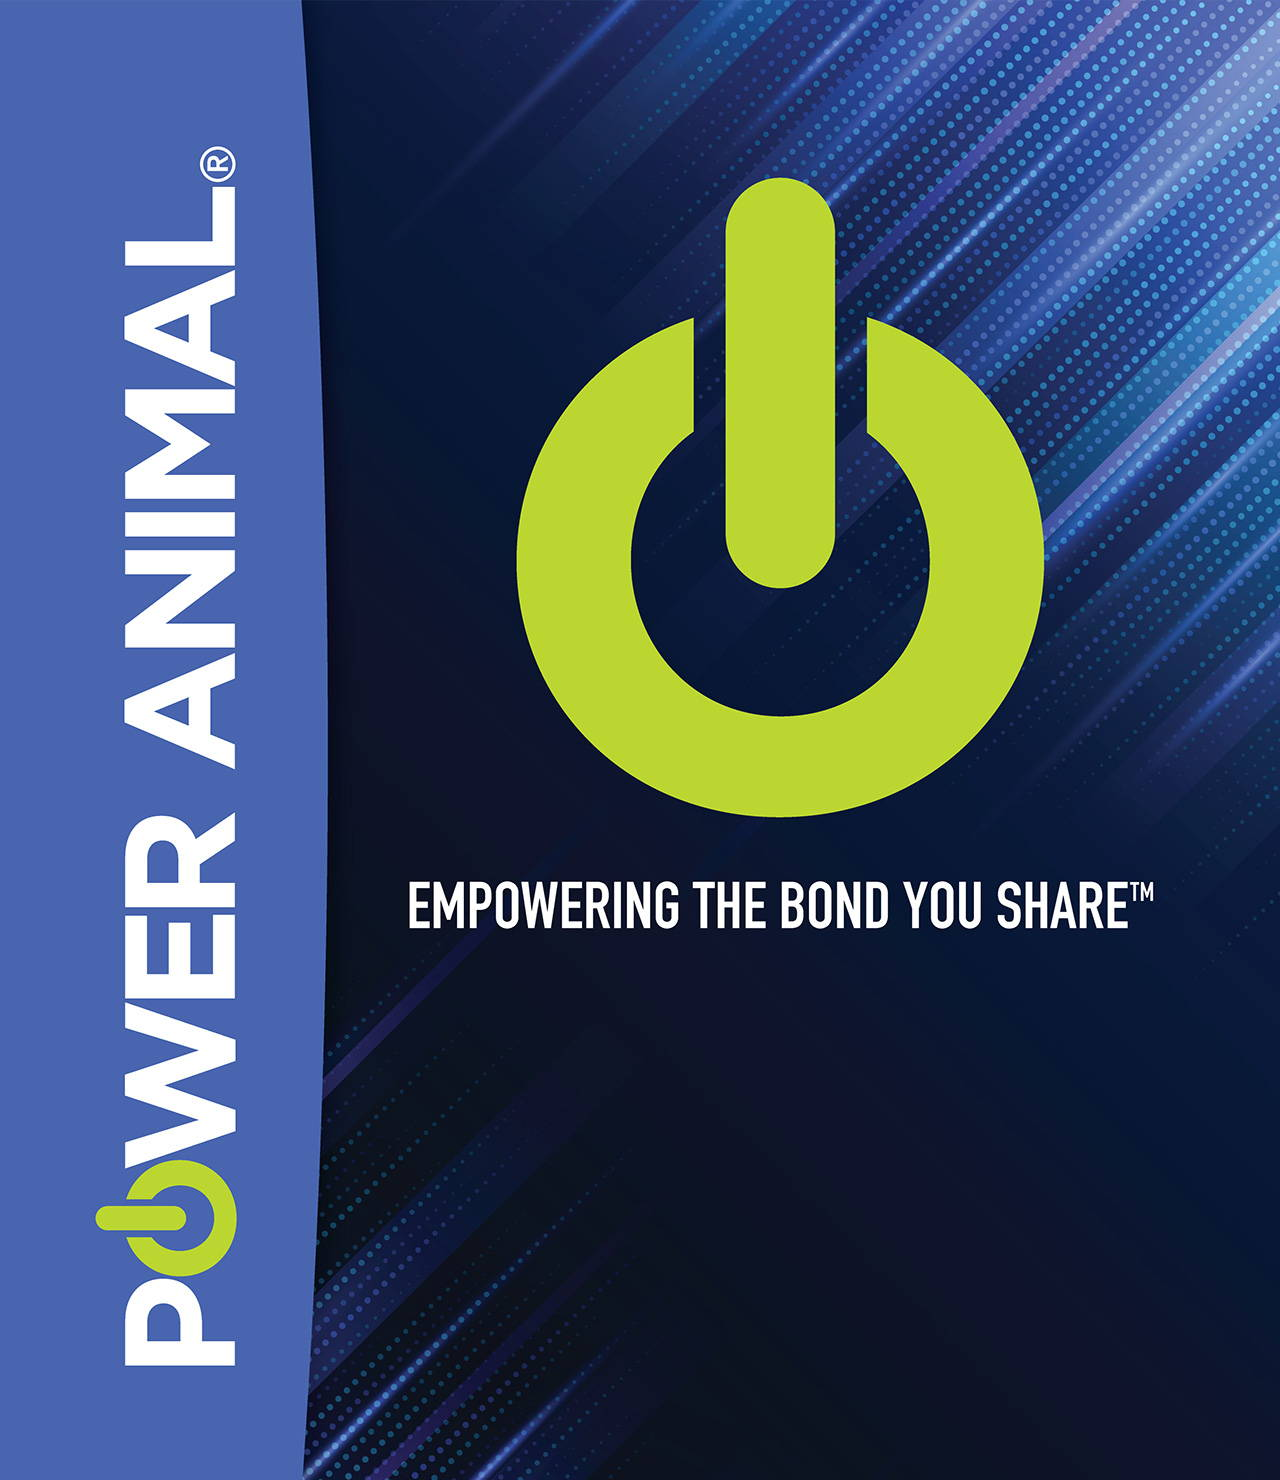 Power Animal is Empowering the bond you share